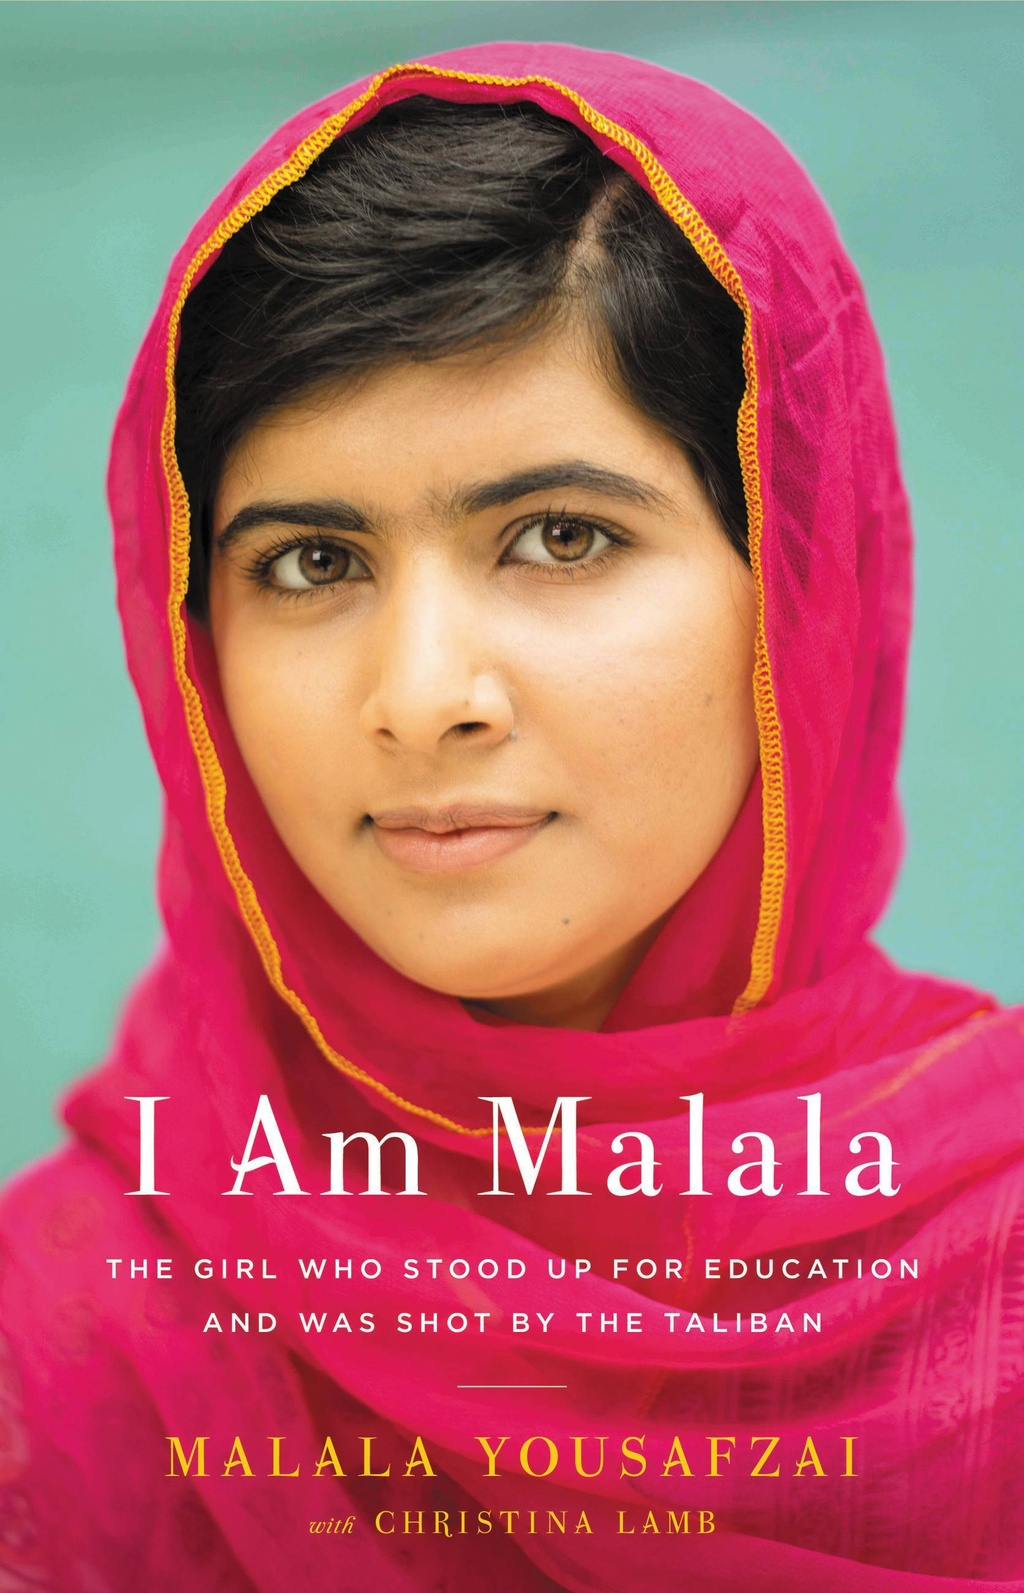 I Am Malala: The Girl Who Stood Up for Education and Was Shot by the Talaban by Malala Yousafzai